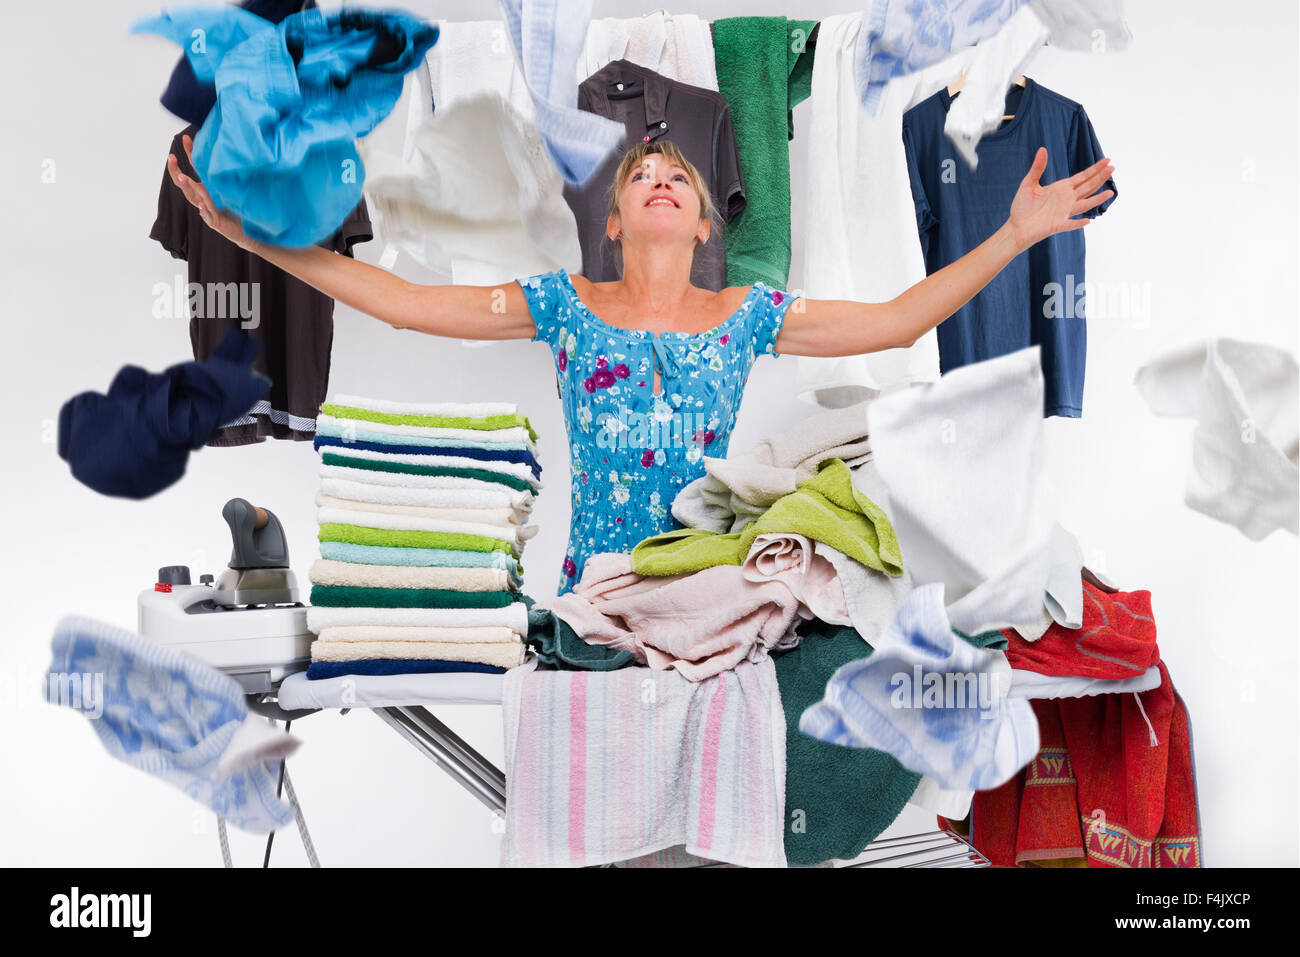 woman behind an ironing board packed with towels iron launches top clothes just ironed - Stock Image